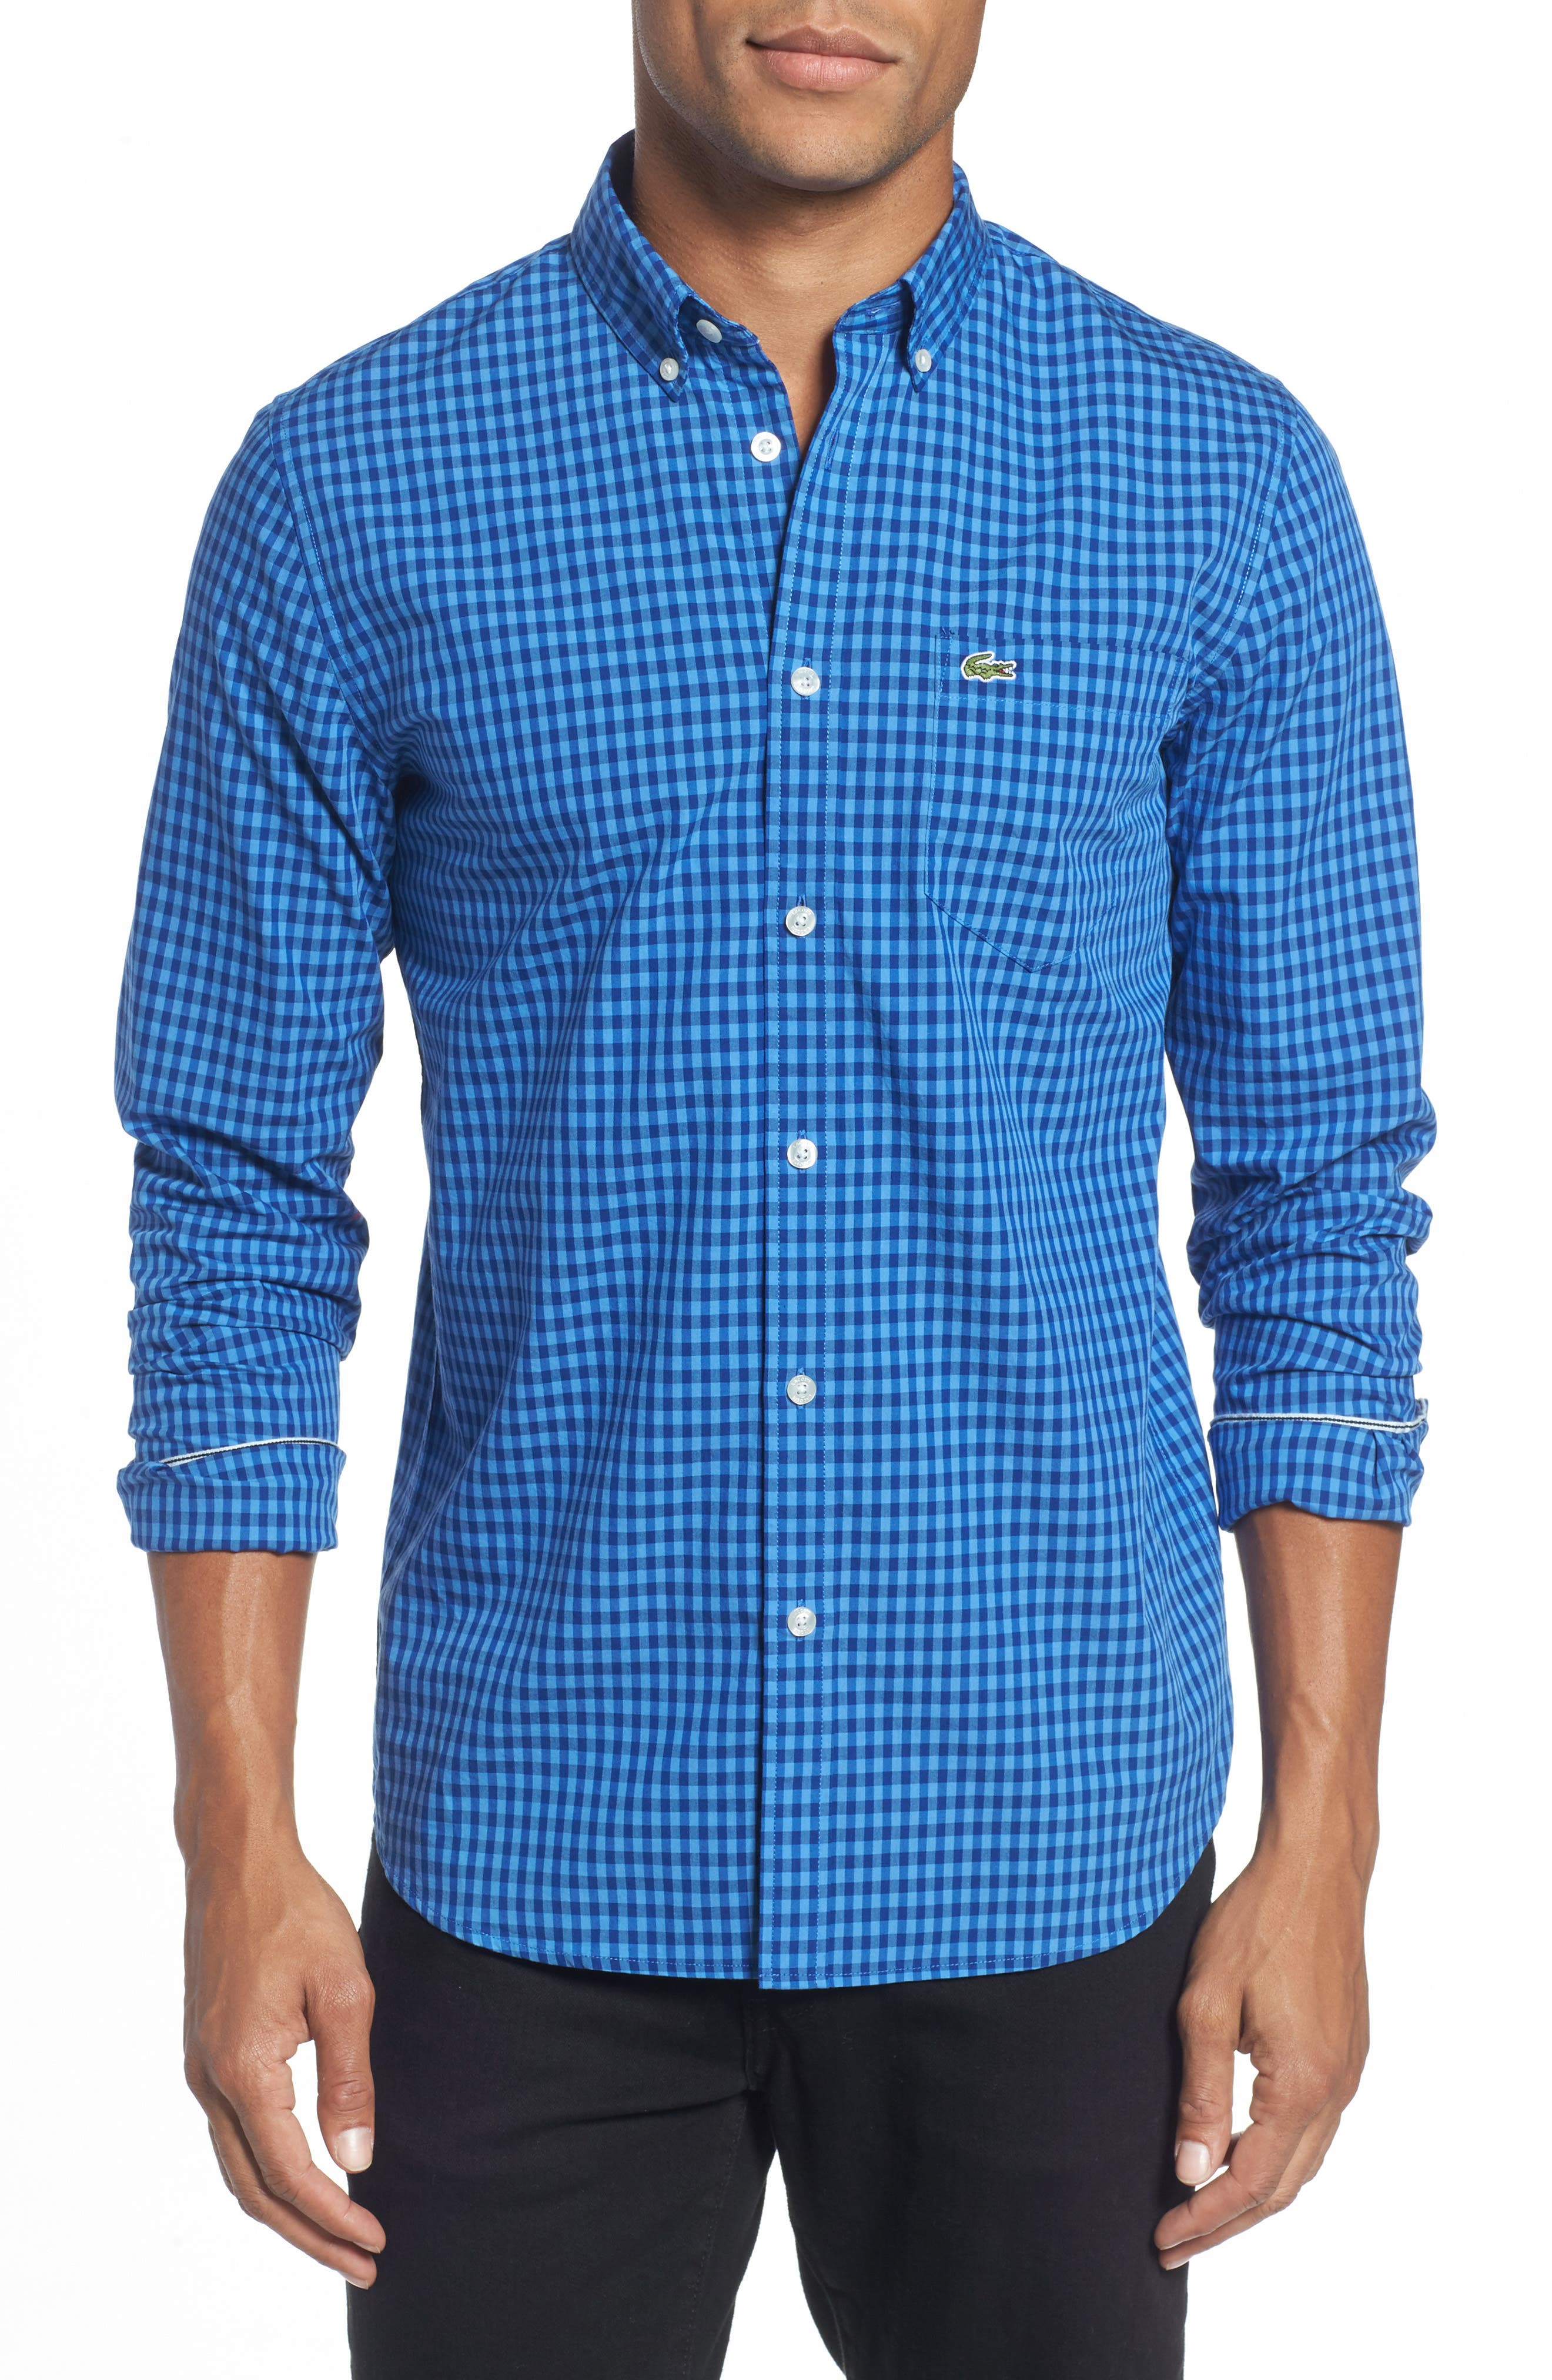 Main Image - Lacoste Gingham Check Poplin Shirt